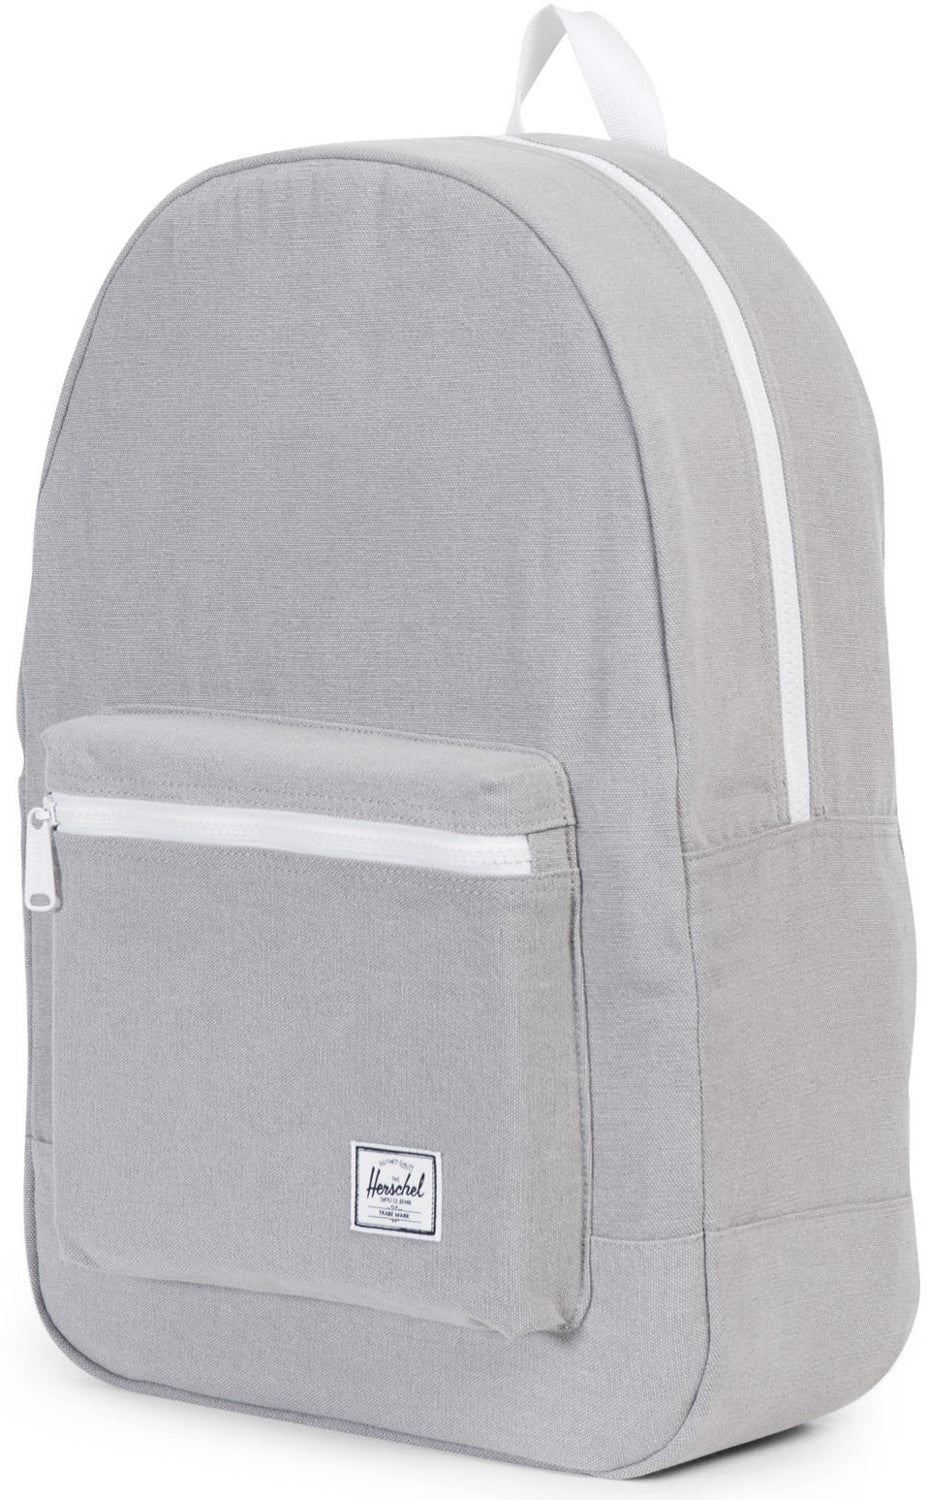 Herschel Supply Co. - Packable Daypack, Grey Canvas - The Giant Peach - 2